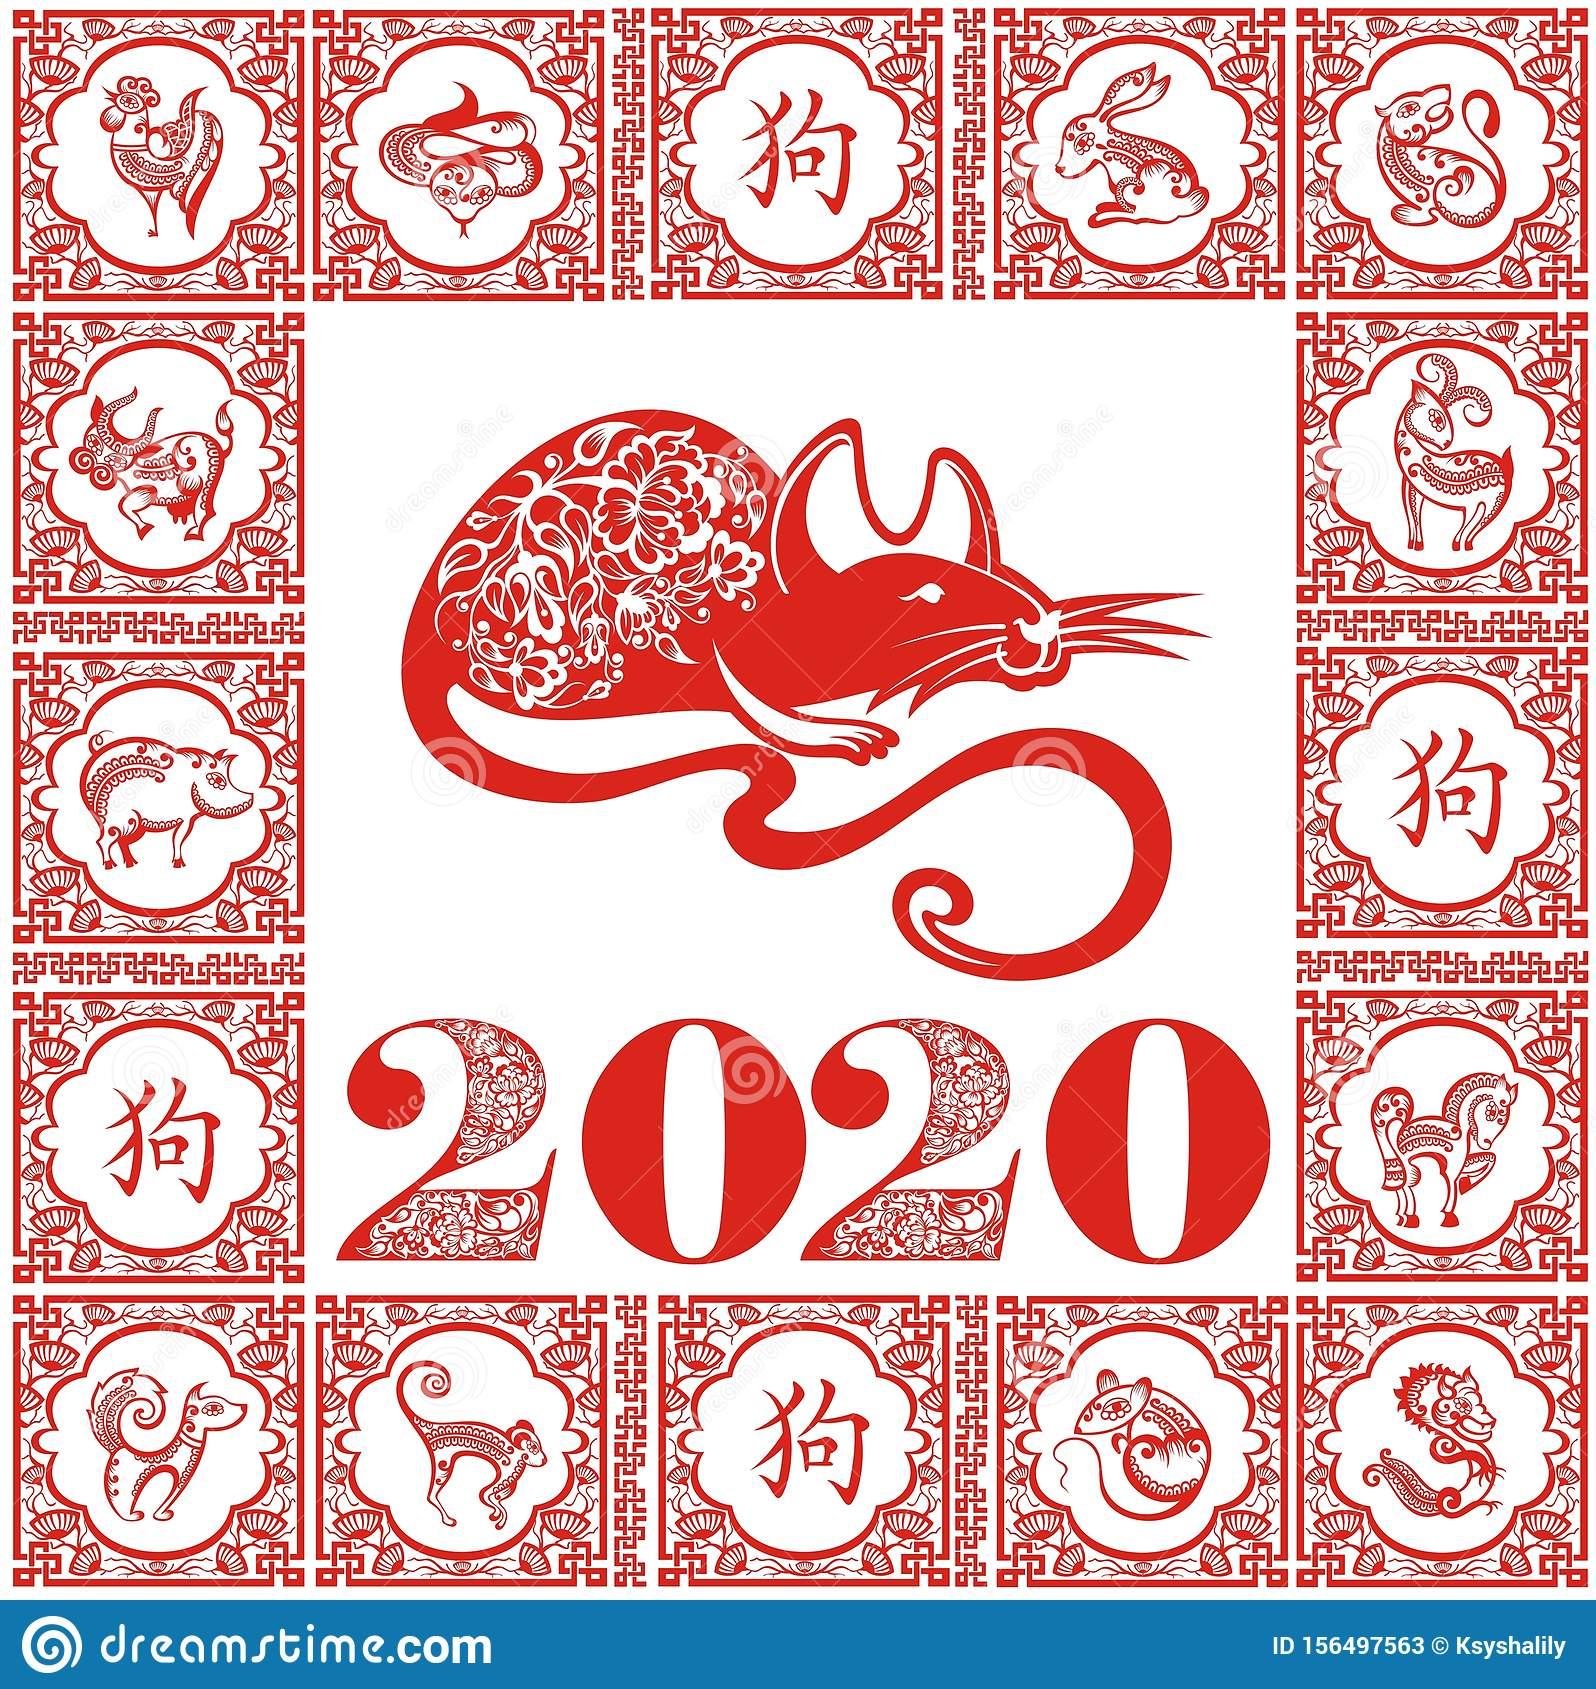 Chinese New Year 2020 Zodiac.Chinese Zodiac Sign Year Of Rat Red Paper Cut Rat Stock